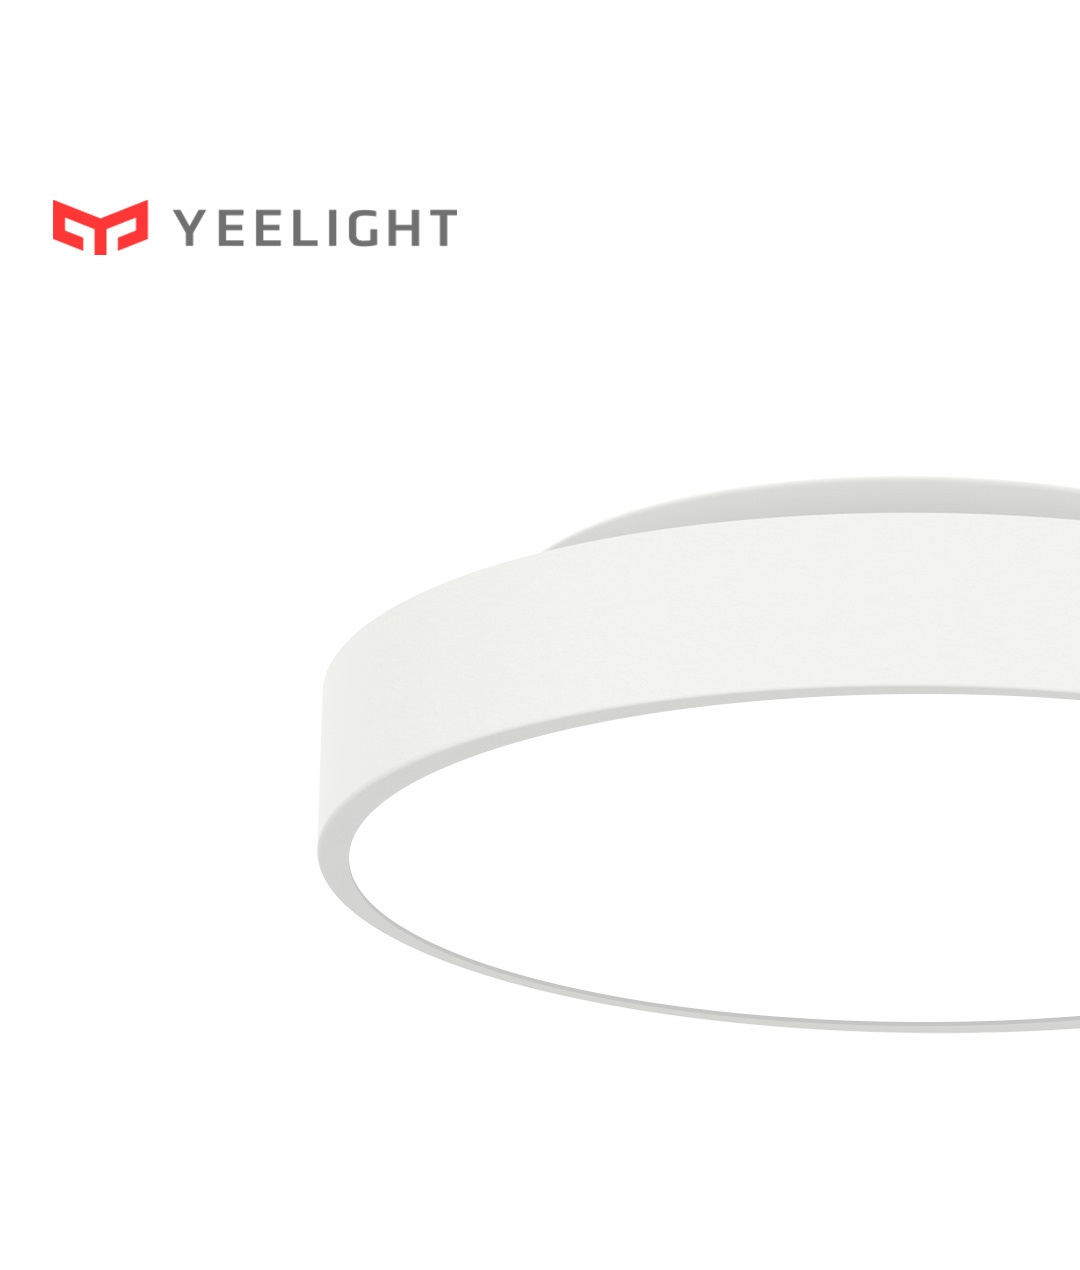 Yeelight Smart LED Ceiling Lamp характеристики